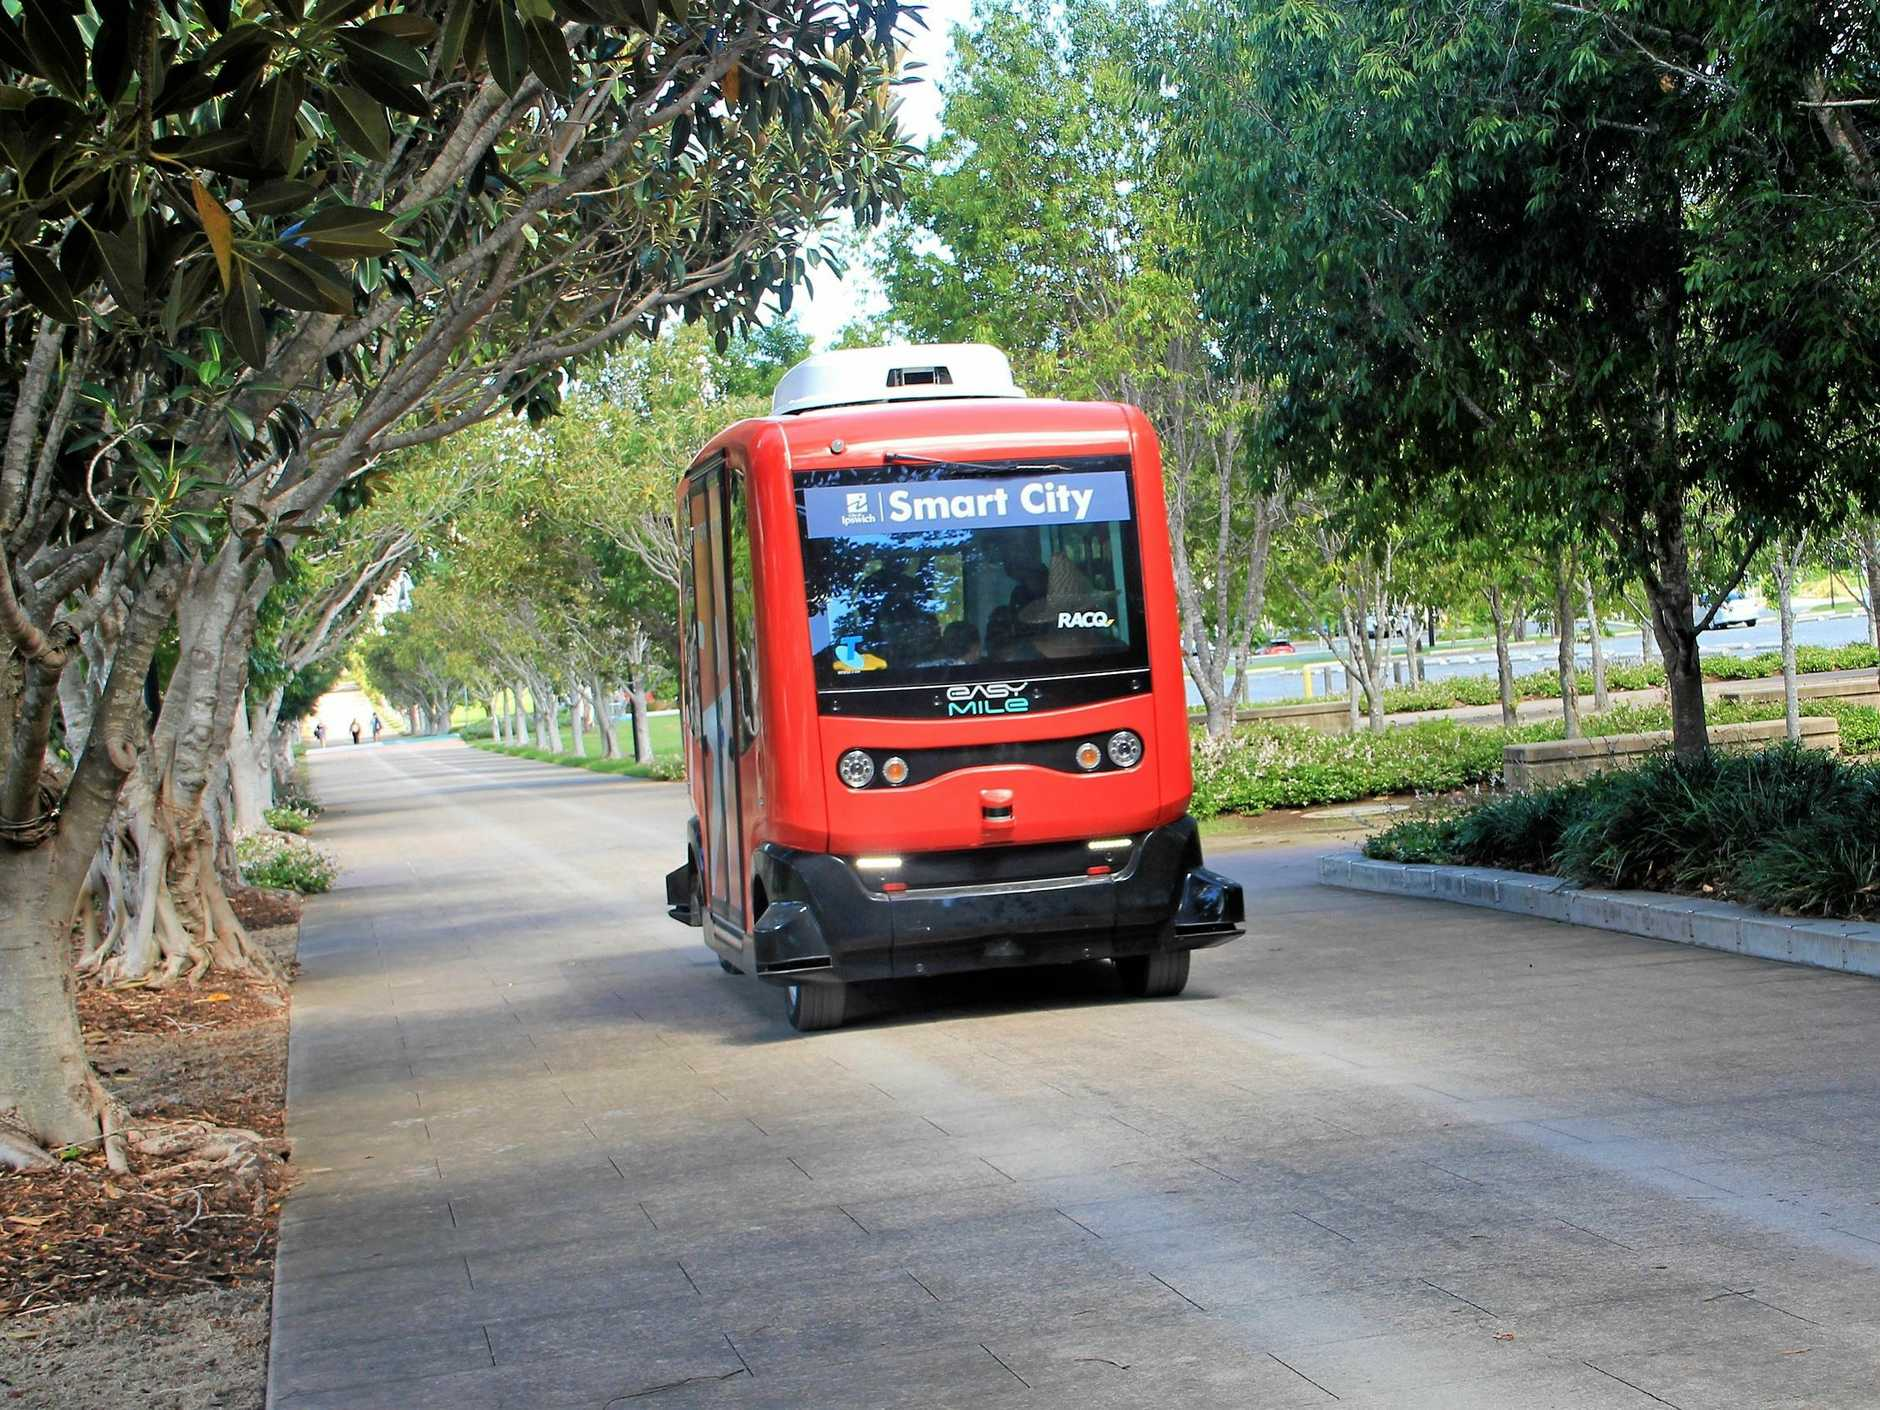 The electric self-driving shuttle EasyMile EZ10 operated between Springfield's Orion Lagoon along John Nugent Way to the University of Southern Queensland's Springfield campus from February 26 to March 3.